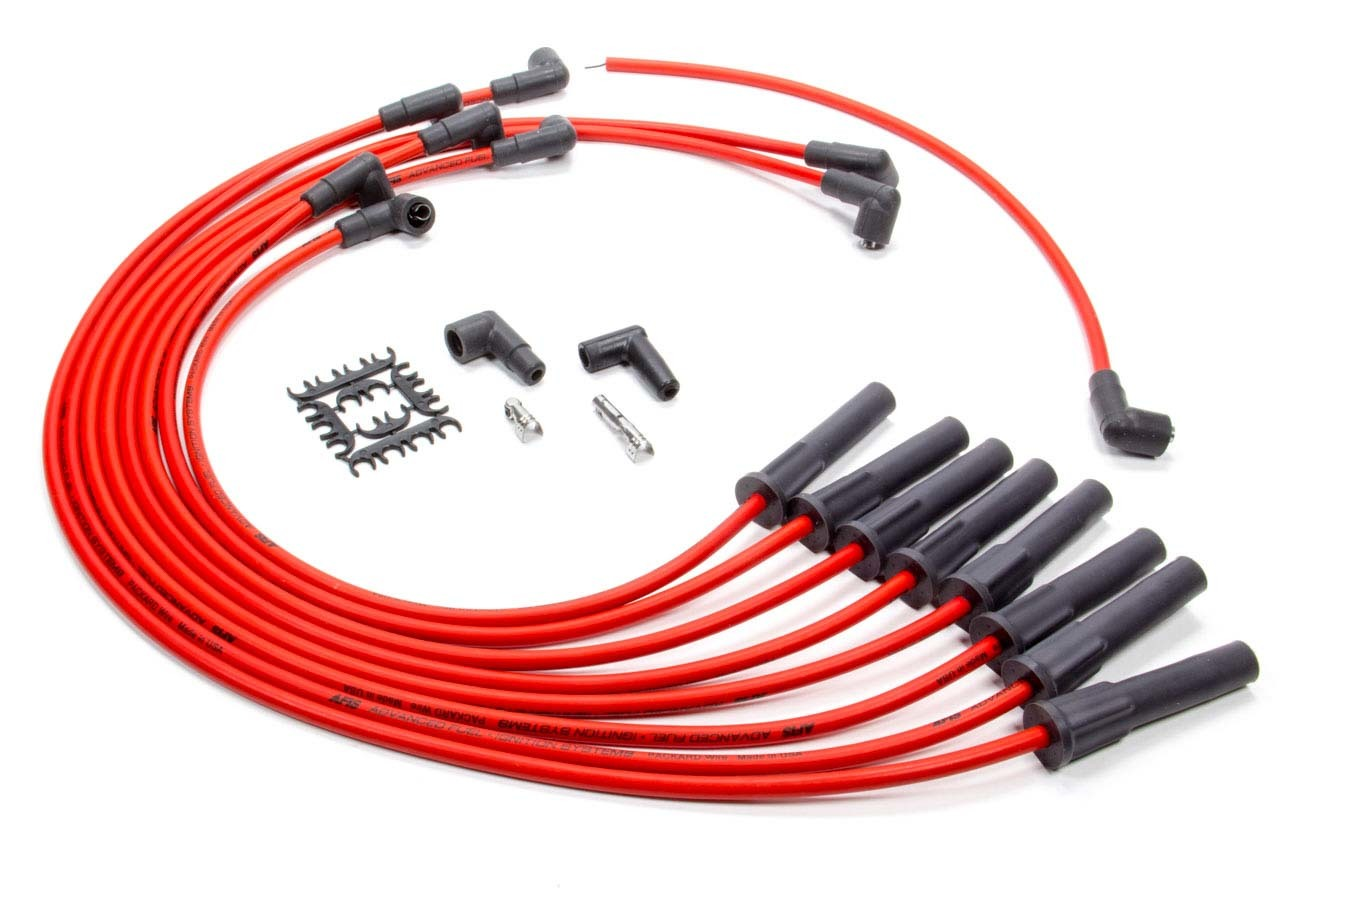 AFIS 850302 Spark Plug Wire Set, Series 50, Spiral Core, 8.5 mm, Red, Straight Plug Boots, Socket Style, Big Block Chevy, Kit